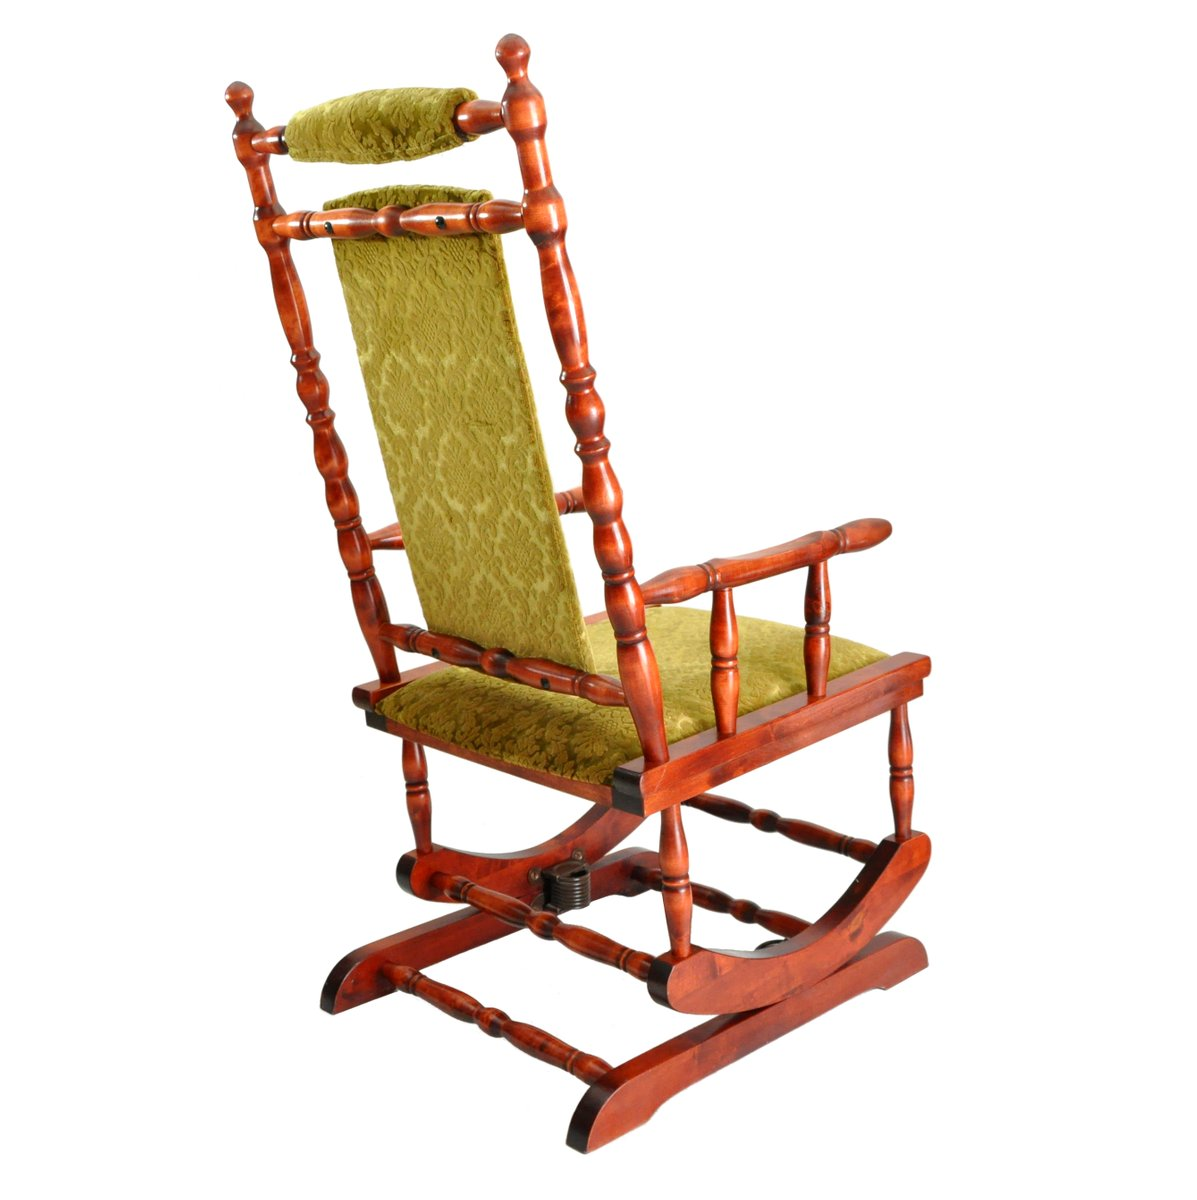 Scandinavian wooden rocking chair 1950s for sale at pamono for Schaukelstuhl outdoor holz